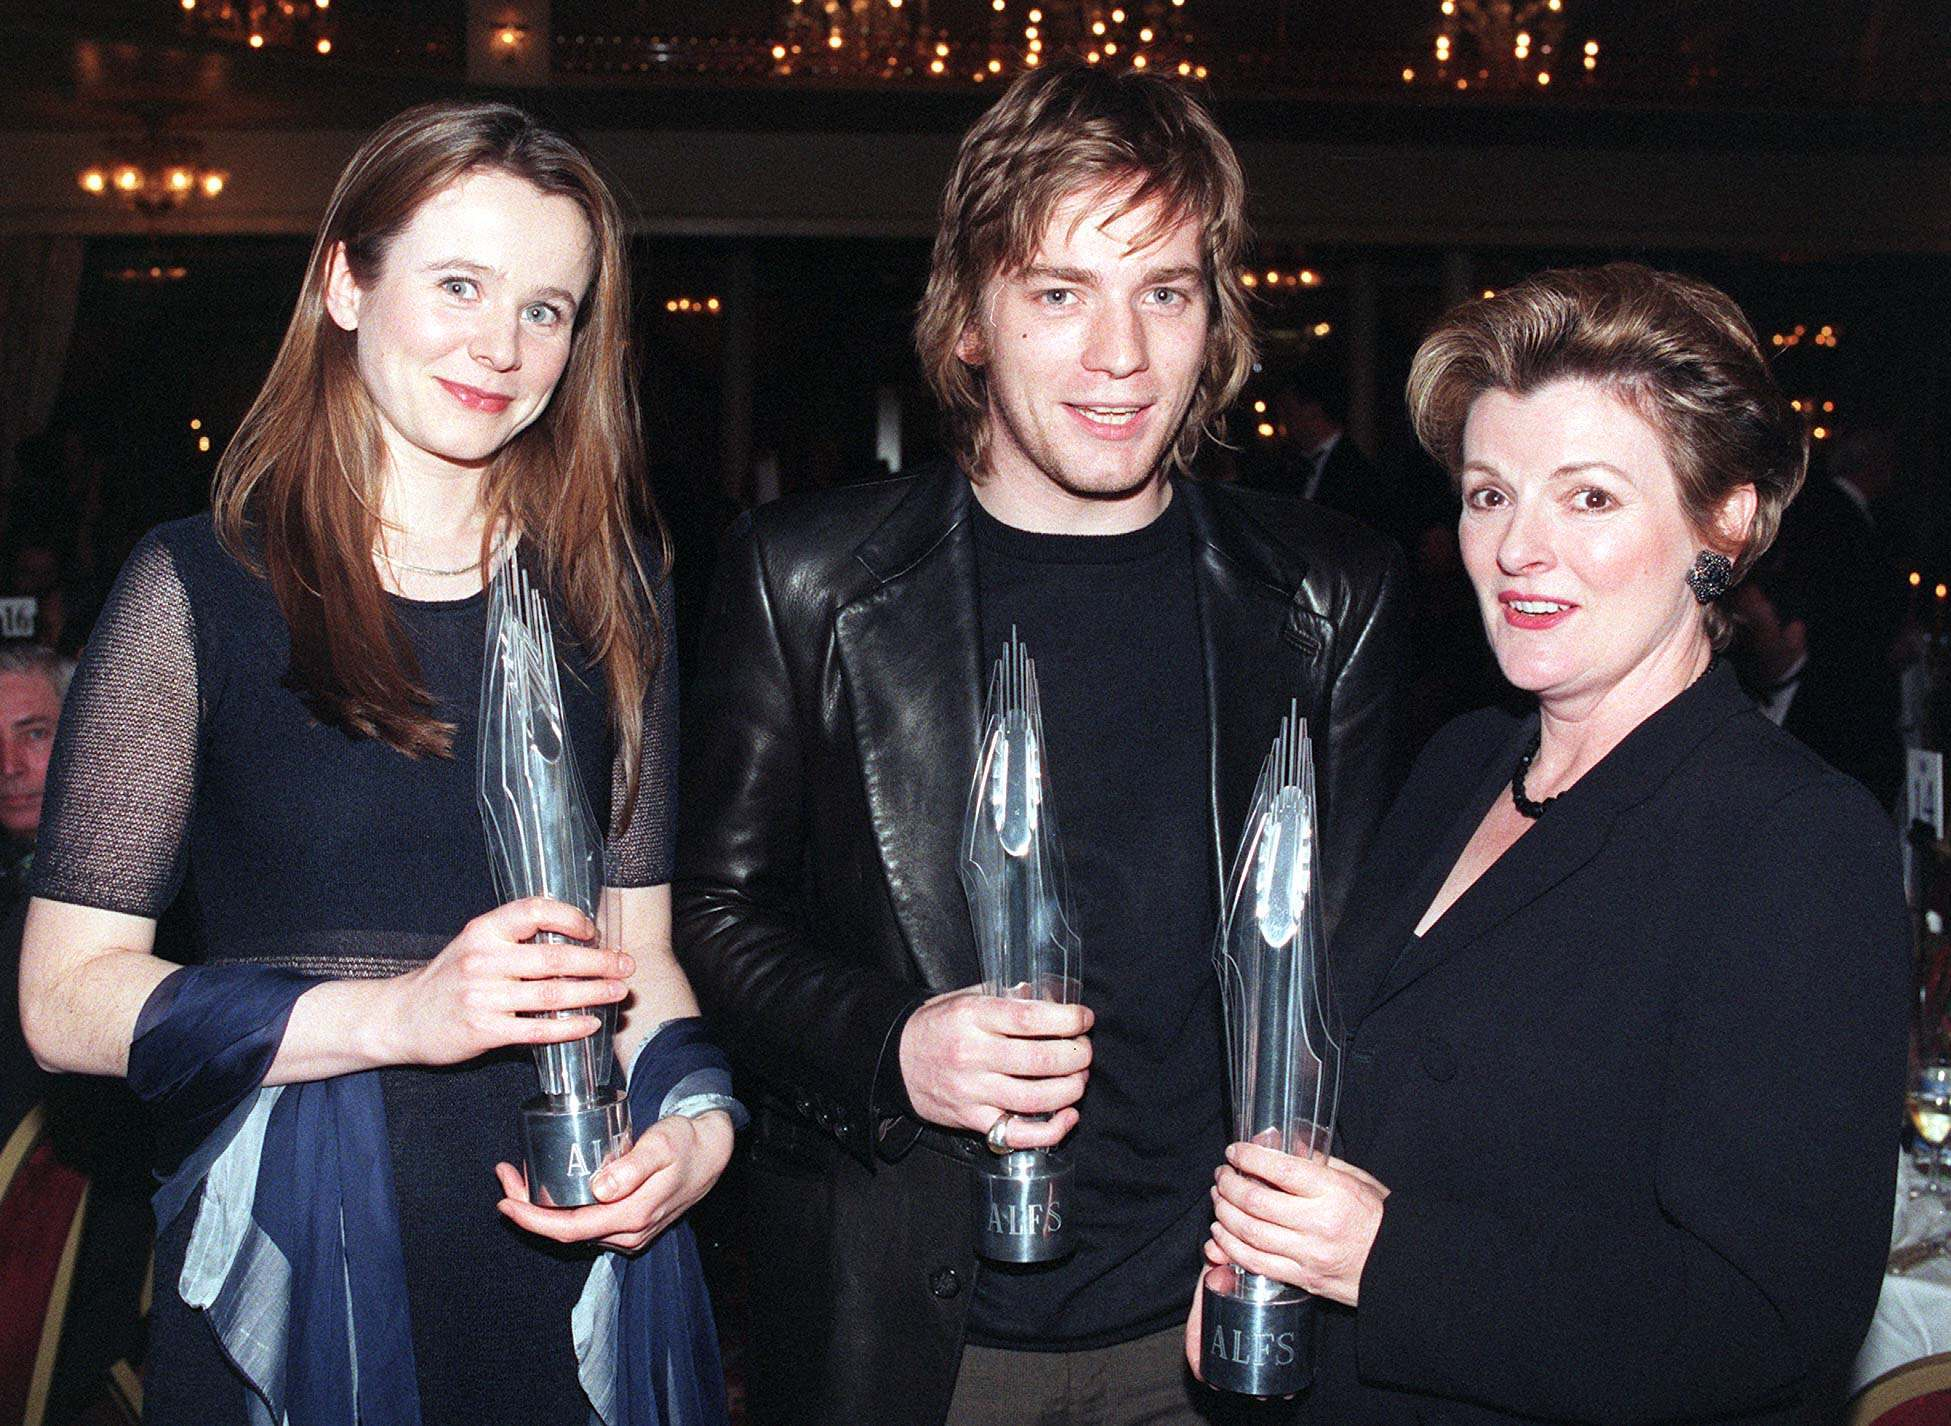 (L-R) Emily Watson, Ewan McGregor and Brenda Blethyn celebrating with their awards at the 1996 London Film Critics Circle Awards this evening (Sunday). Watson took the British Newcomer of the Year, McGregor took Best Actor, and Blethyn won the Best Actress award. 02/03/1997